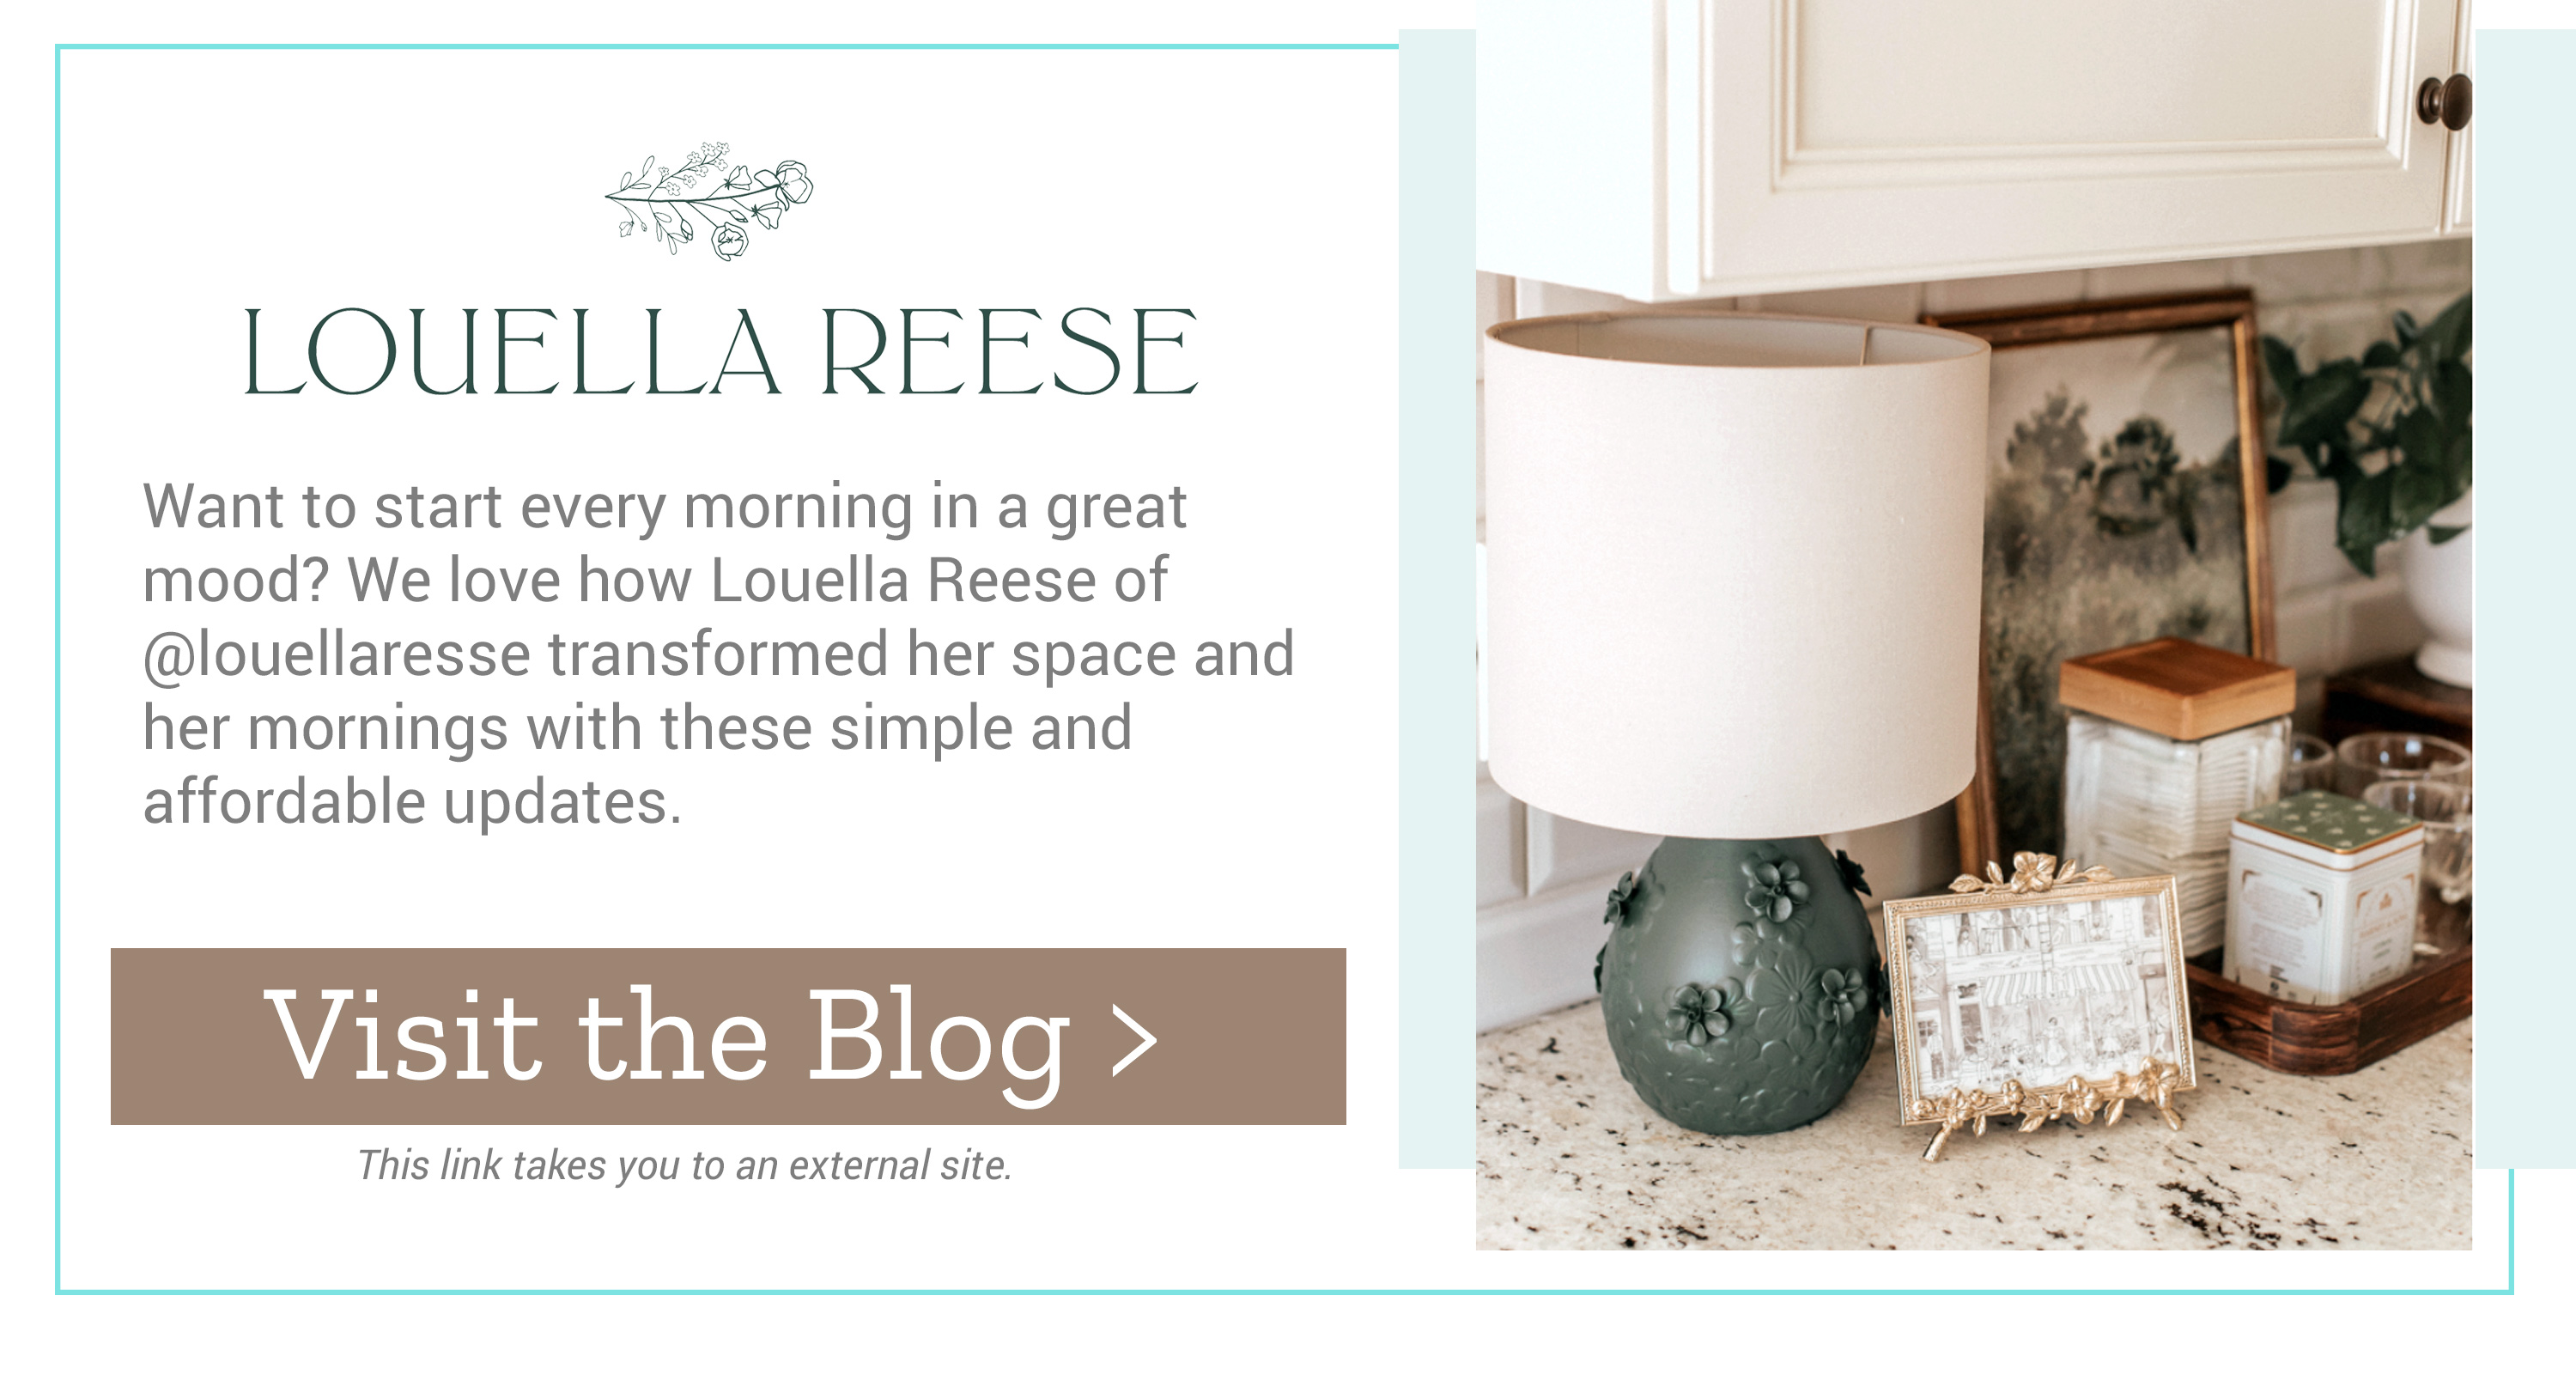 Louella Reese - Want to start every morning in a great mood? We love how Louella Reese of @louellaresse transformed her space and her mornings with these simple and affordable updates. Visit the Blog >